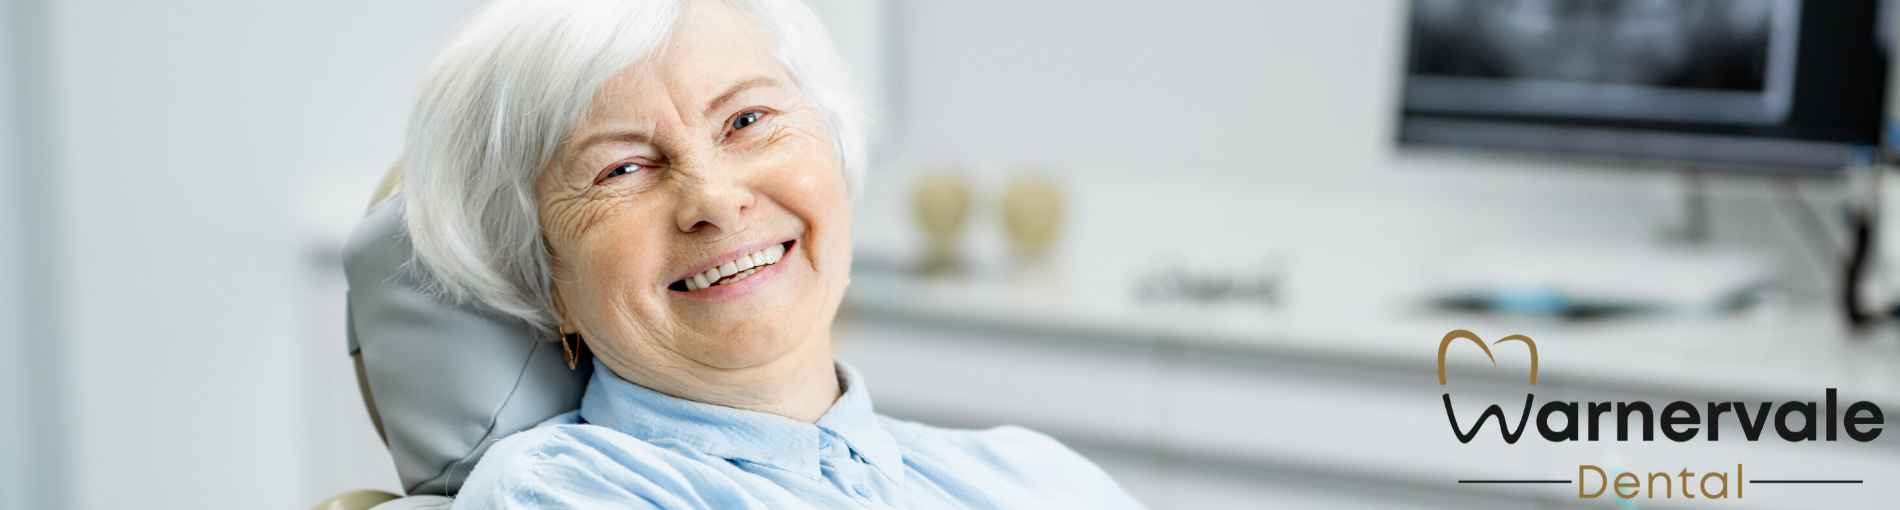 Ditch the dentures- 7 reasons why dental implants are a better option